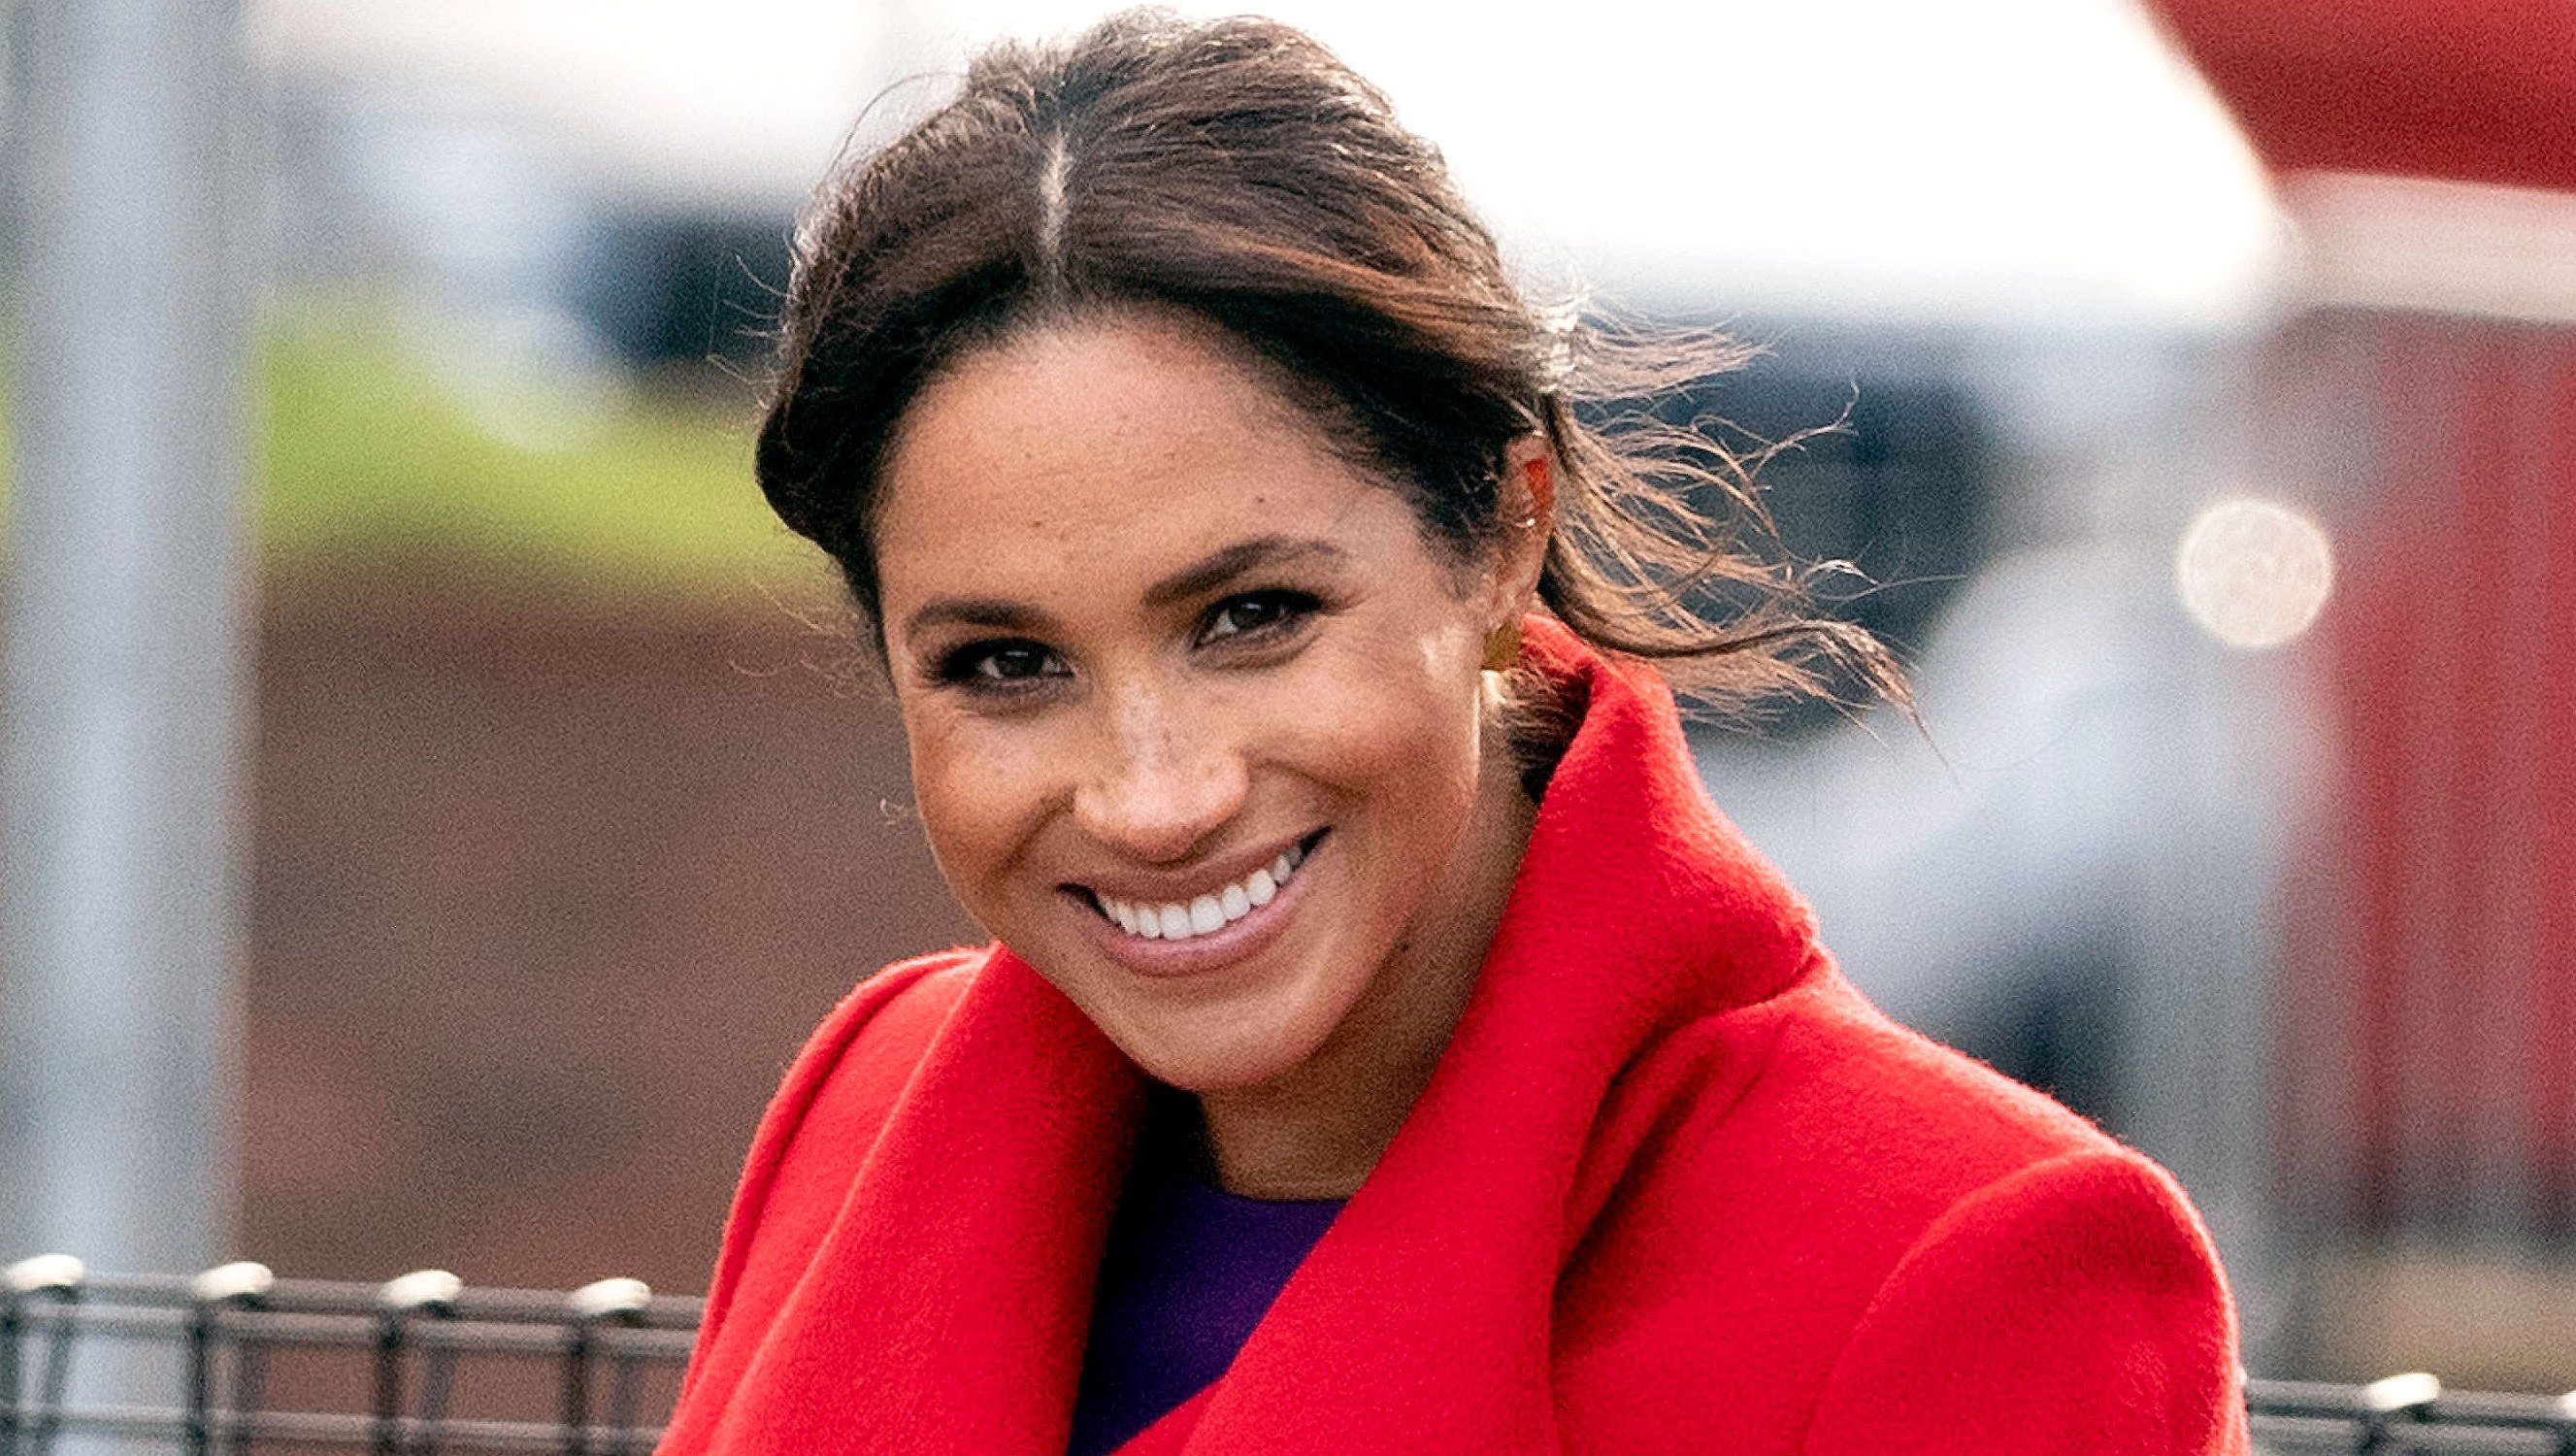 Duchess-Meghan-makeup-artist-Daniel-Martin-spent-the-weekend